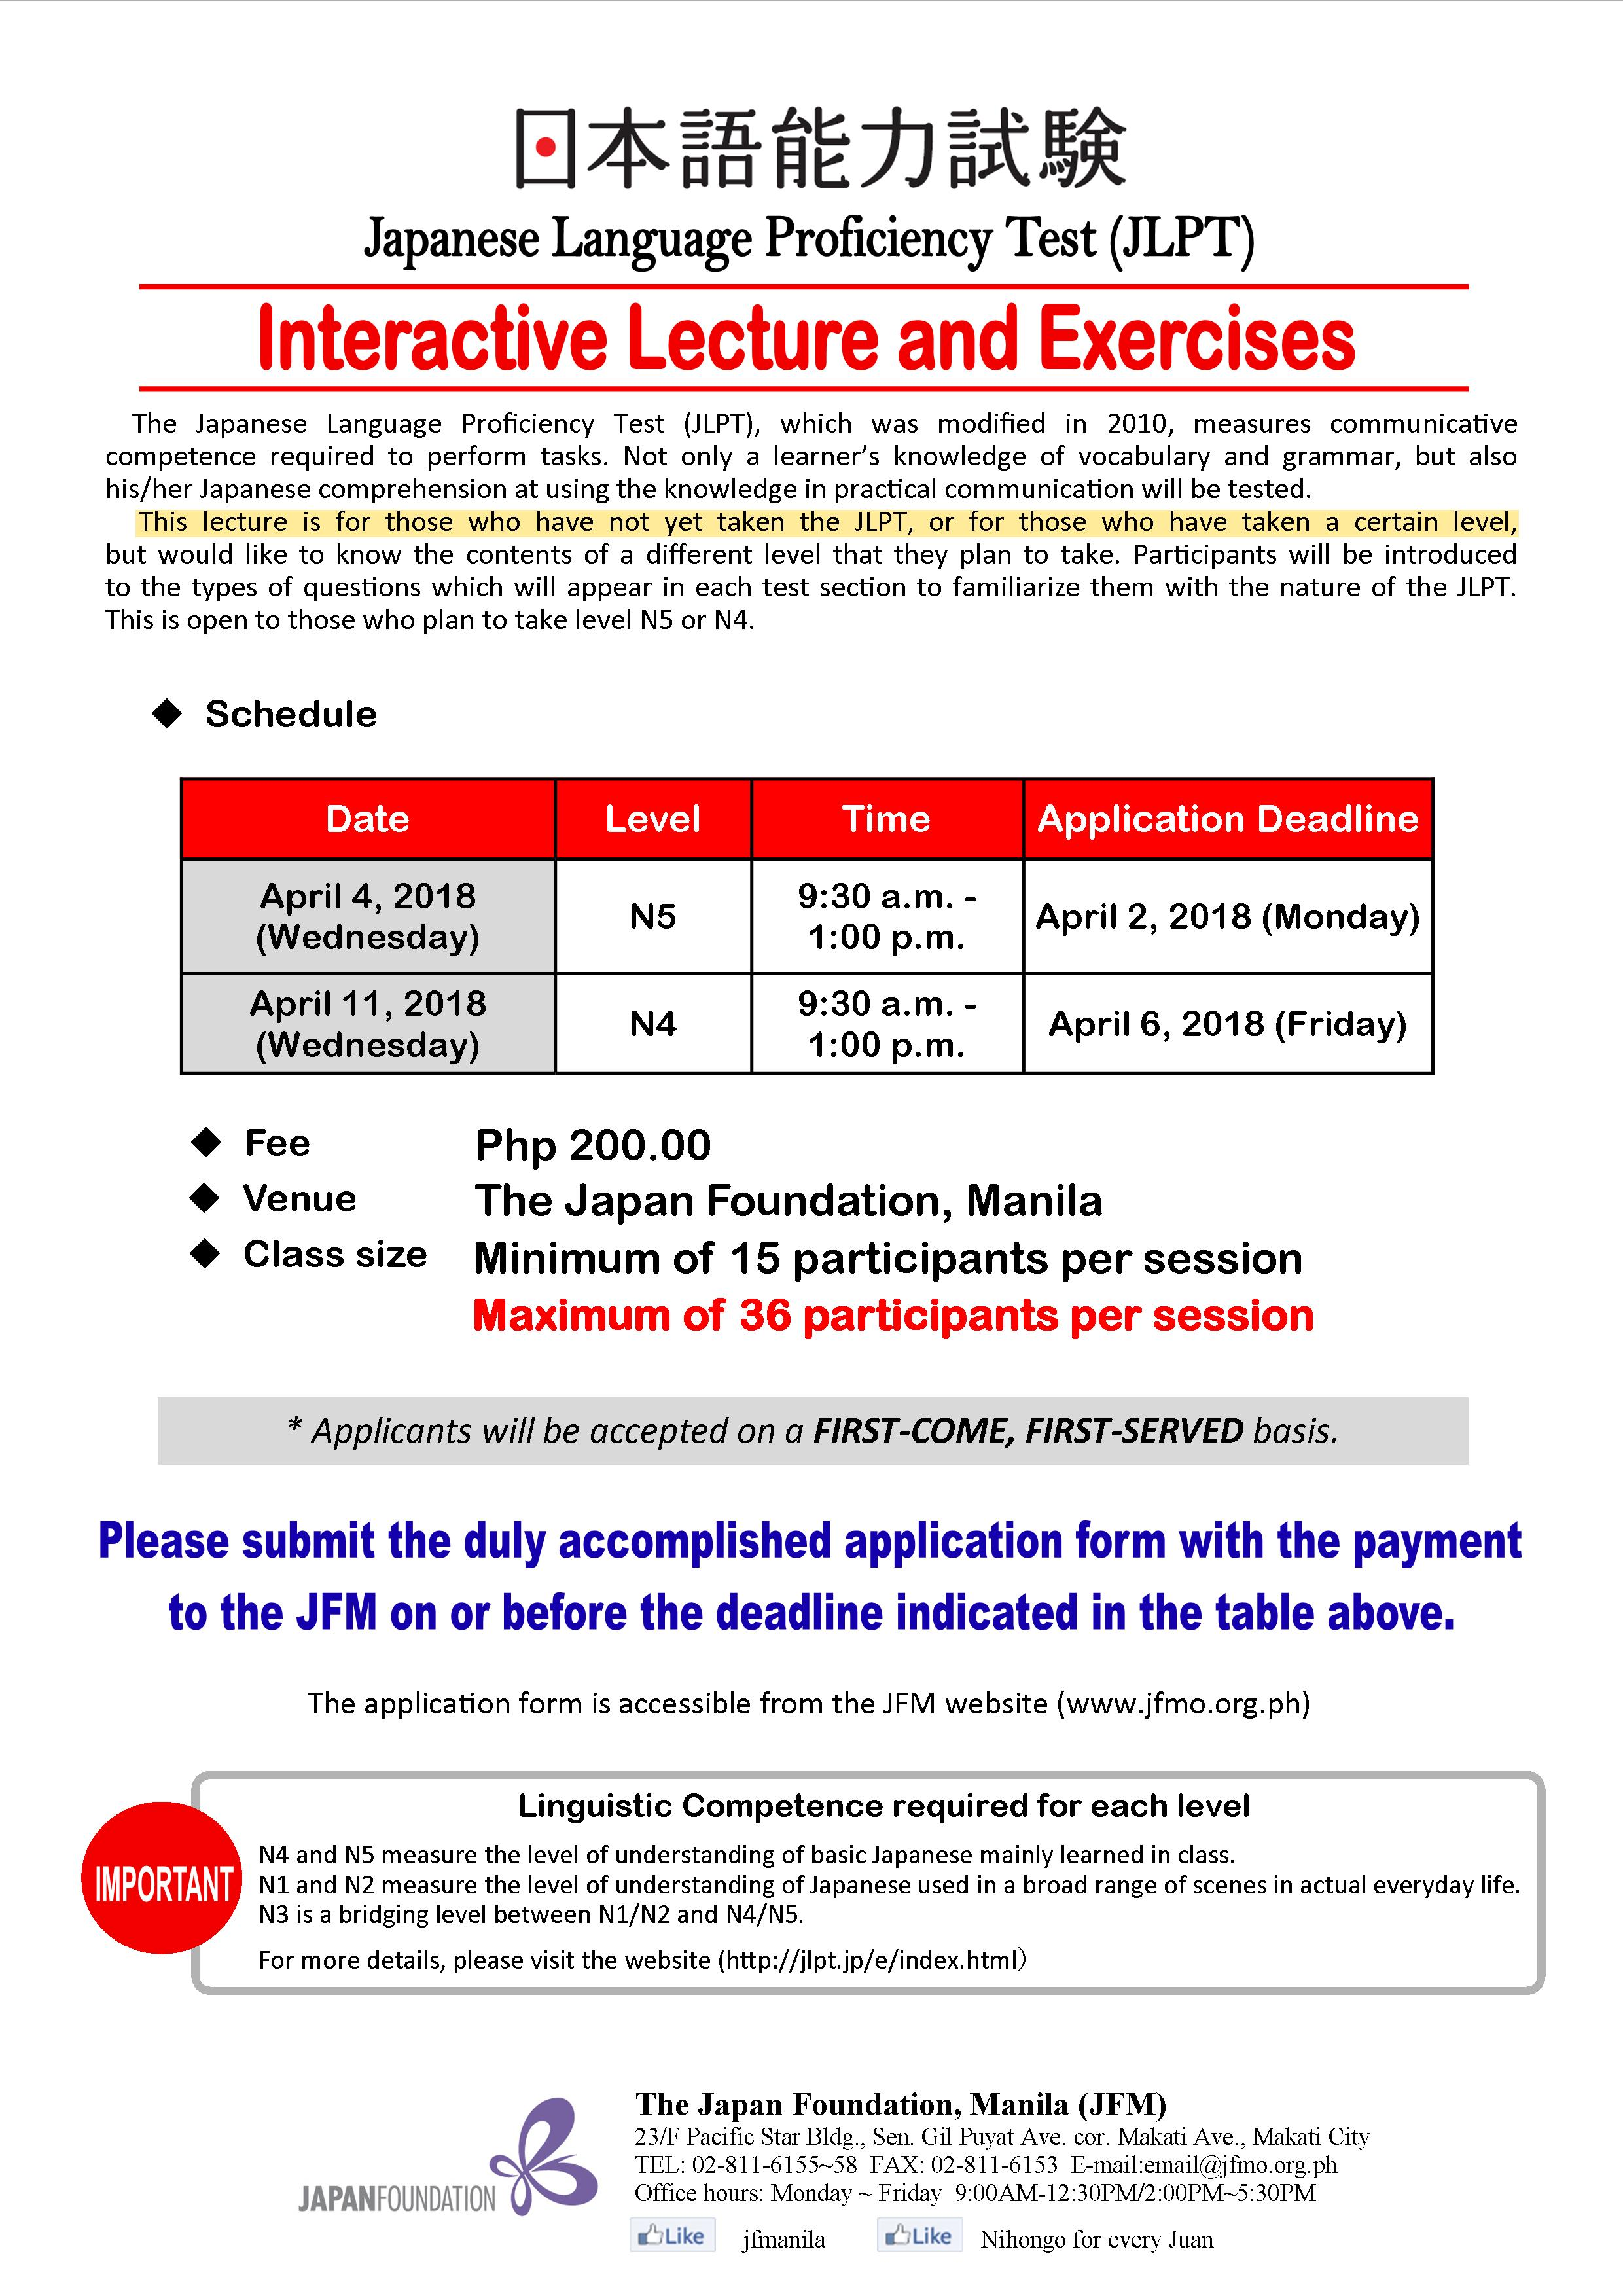 JLPT Interactive Lecture and Exercises – N4 & N5 (For JLPT JULY 2018)